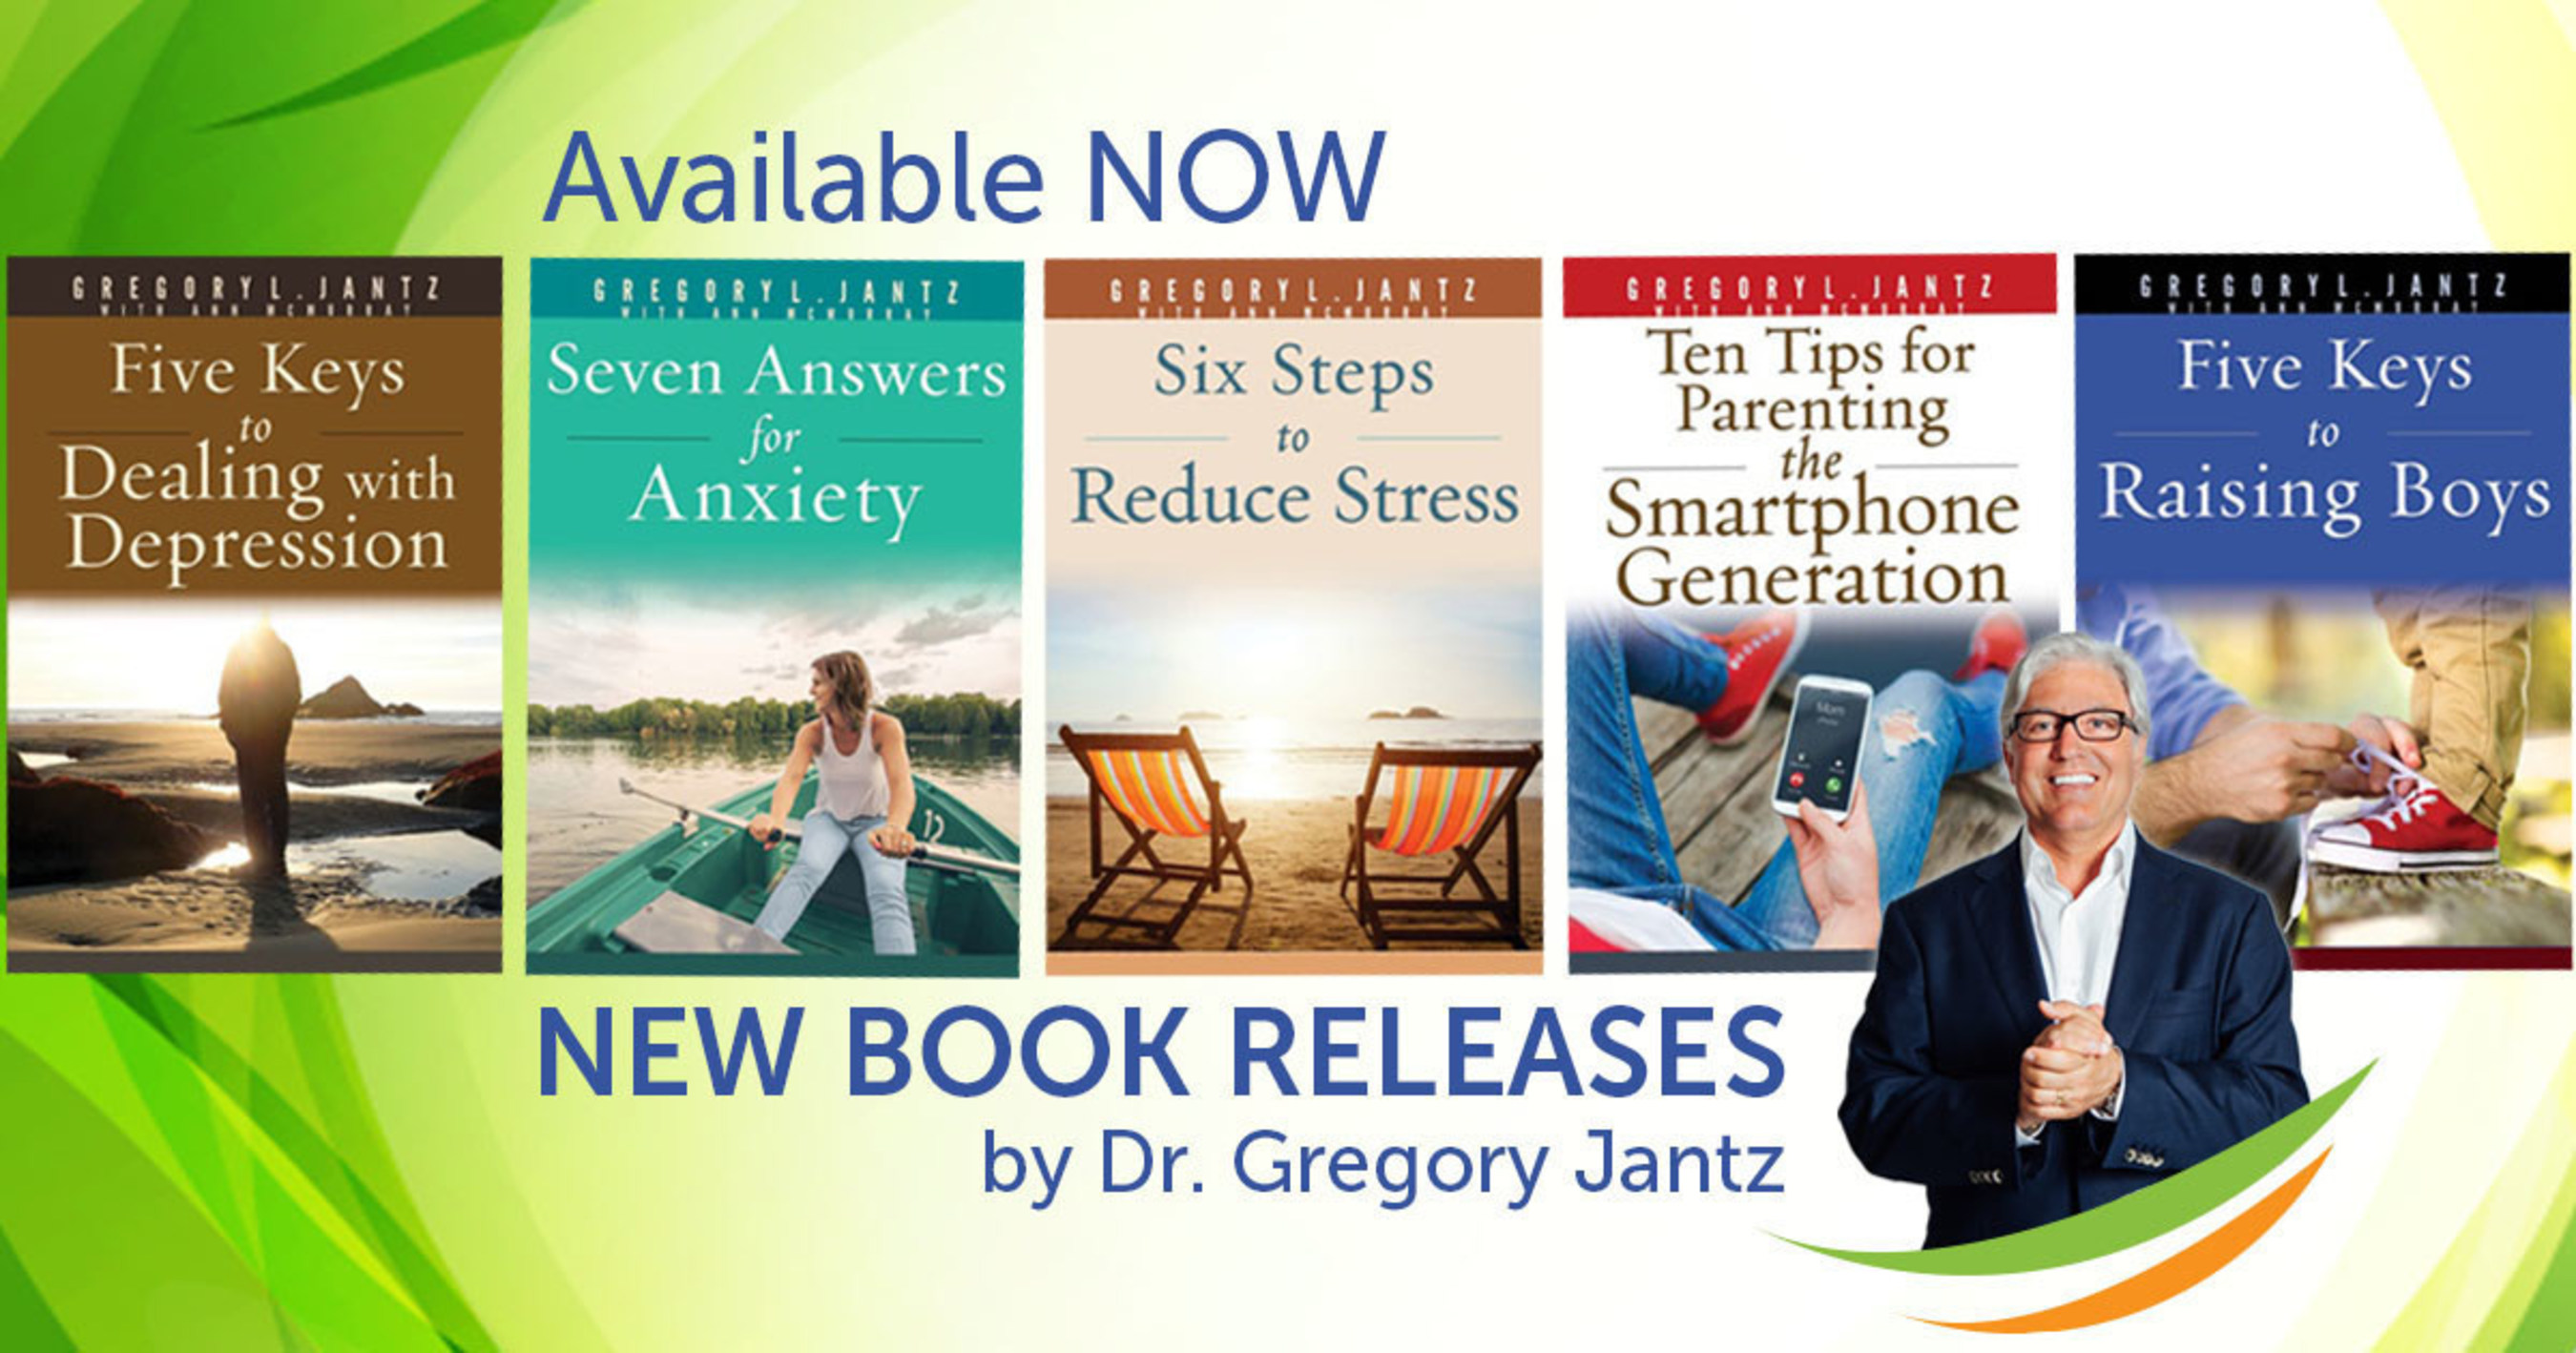 Dr. Gregory Jantz Releases Five New Books